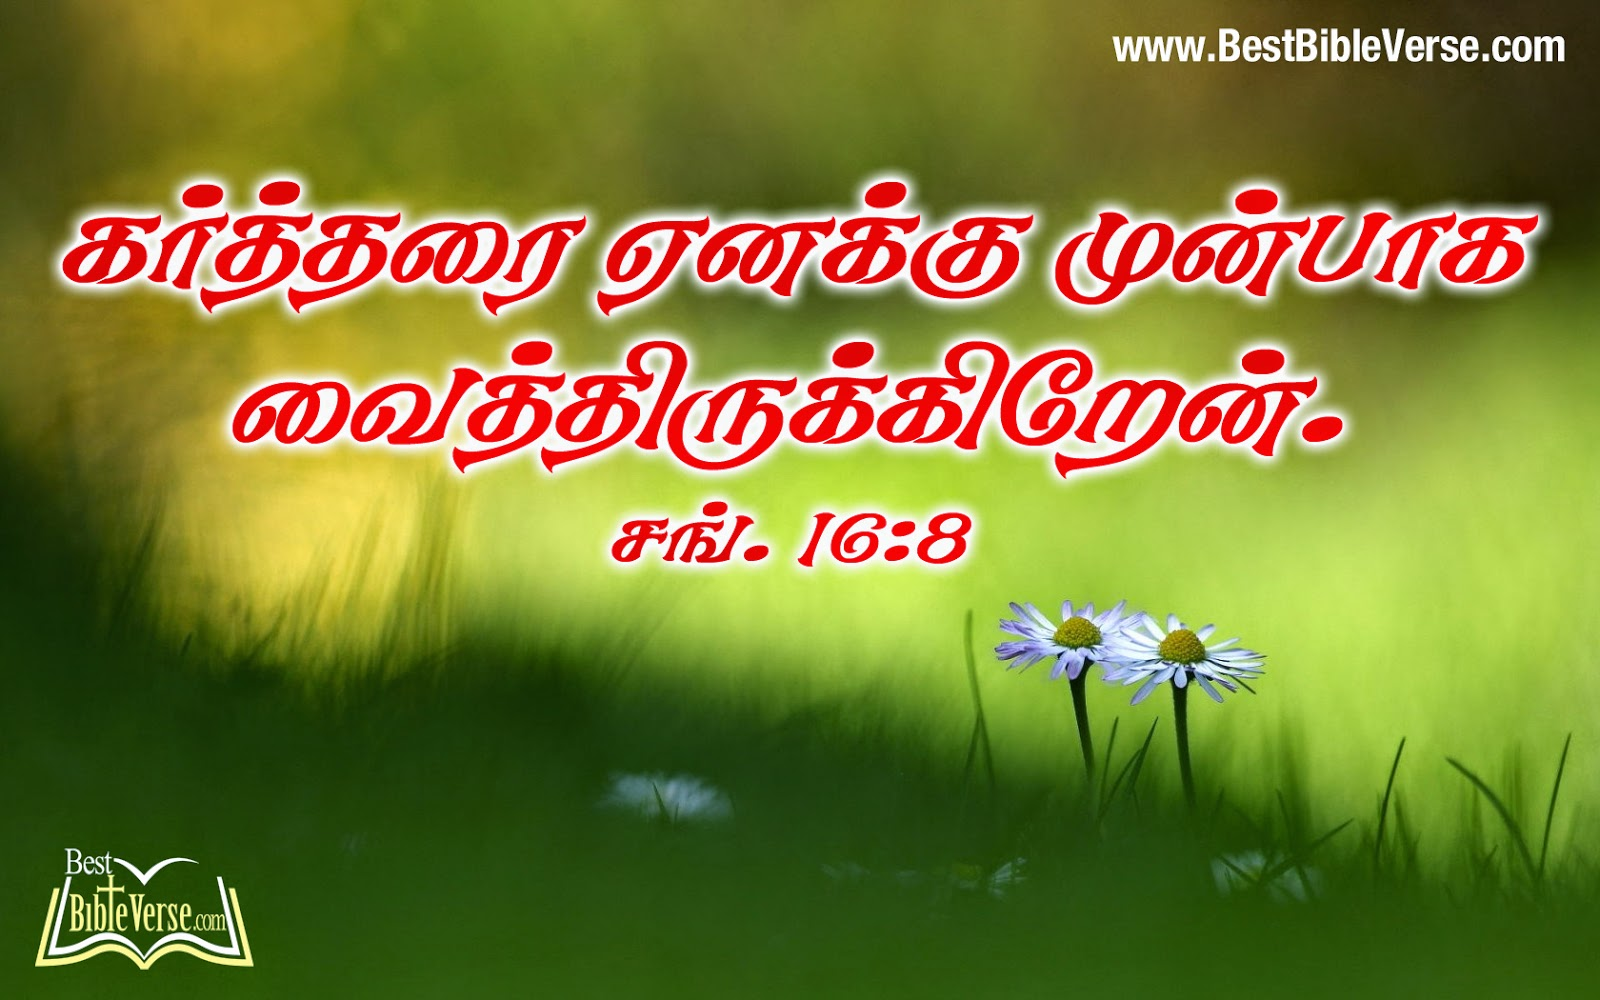 tamil bible words wallpapers - photo #20